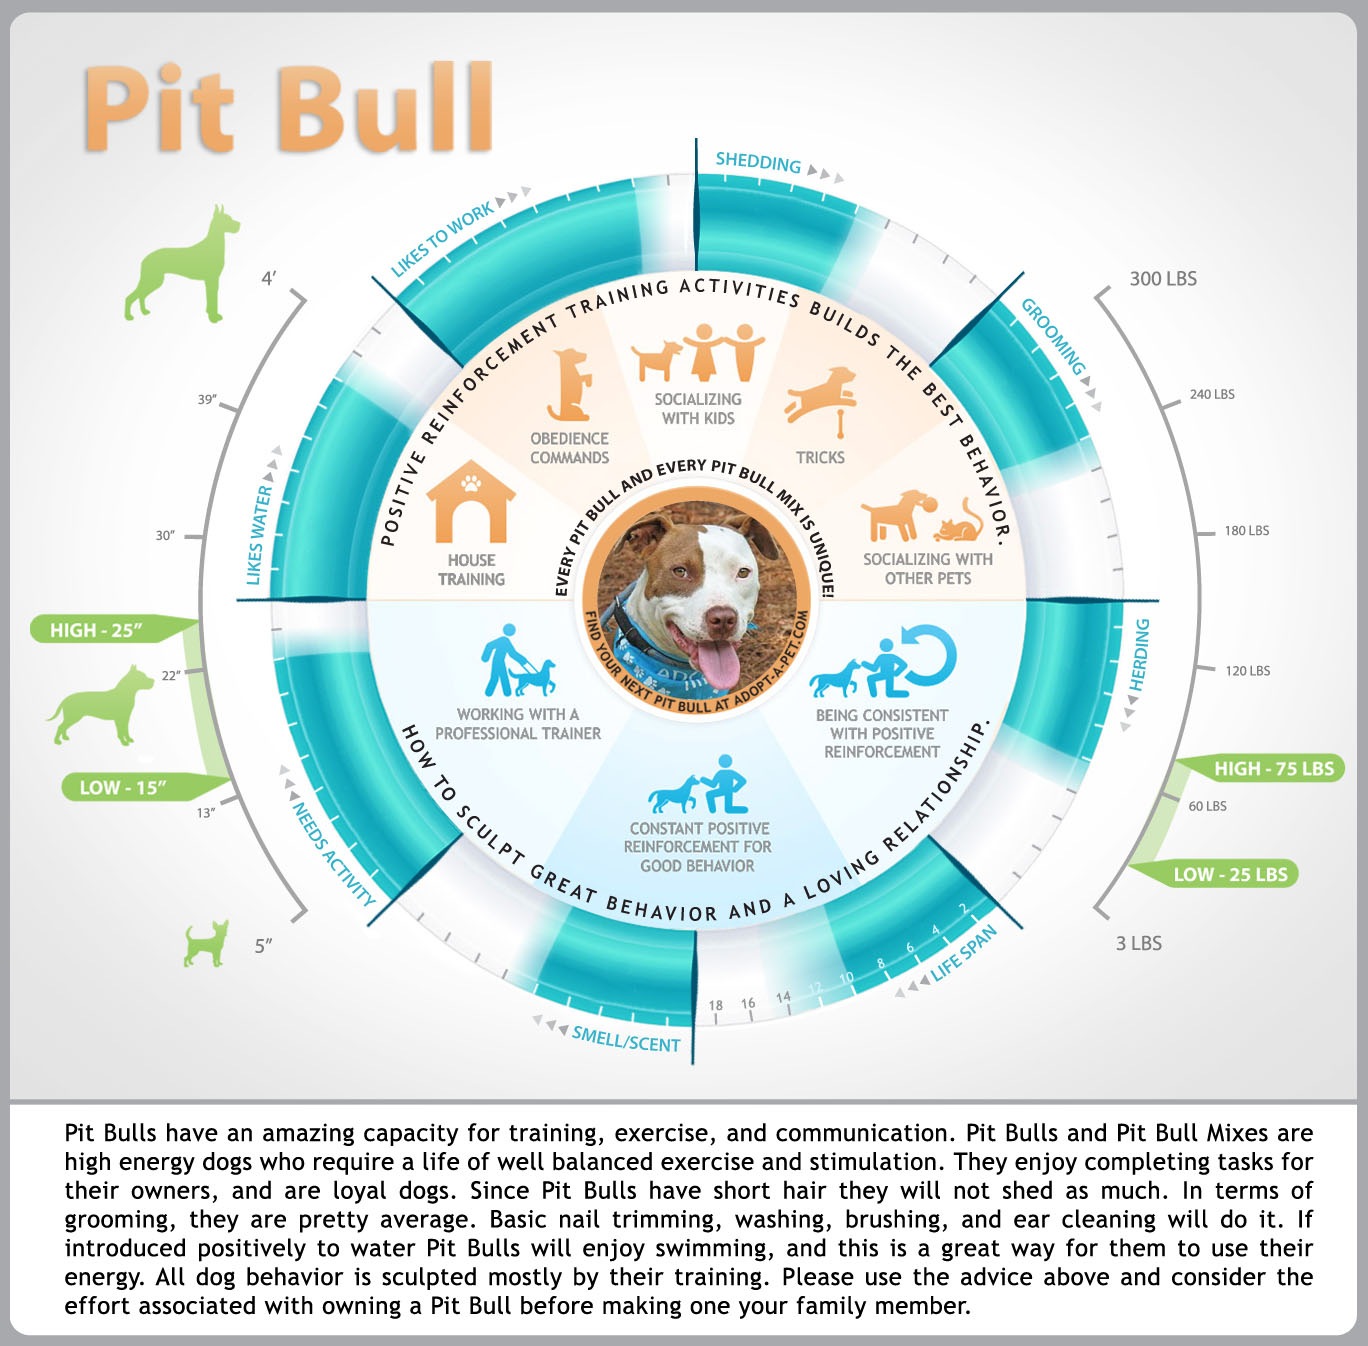 Pit Bull Sale Advice